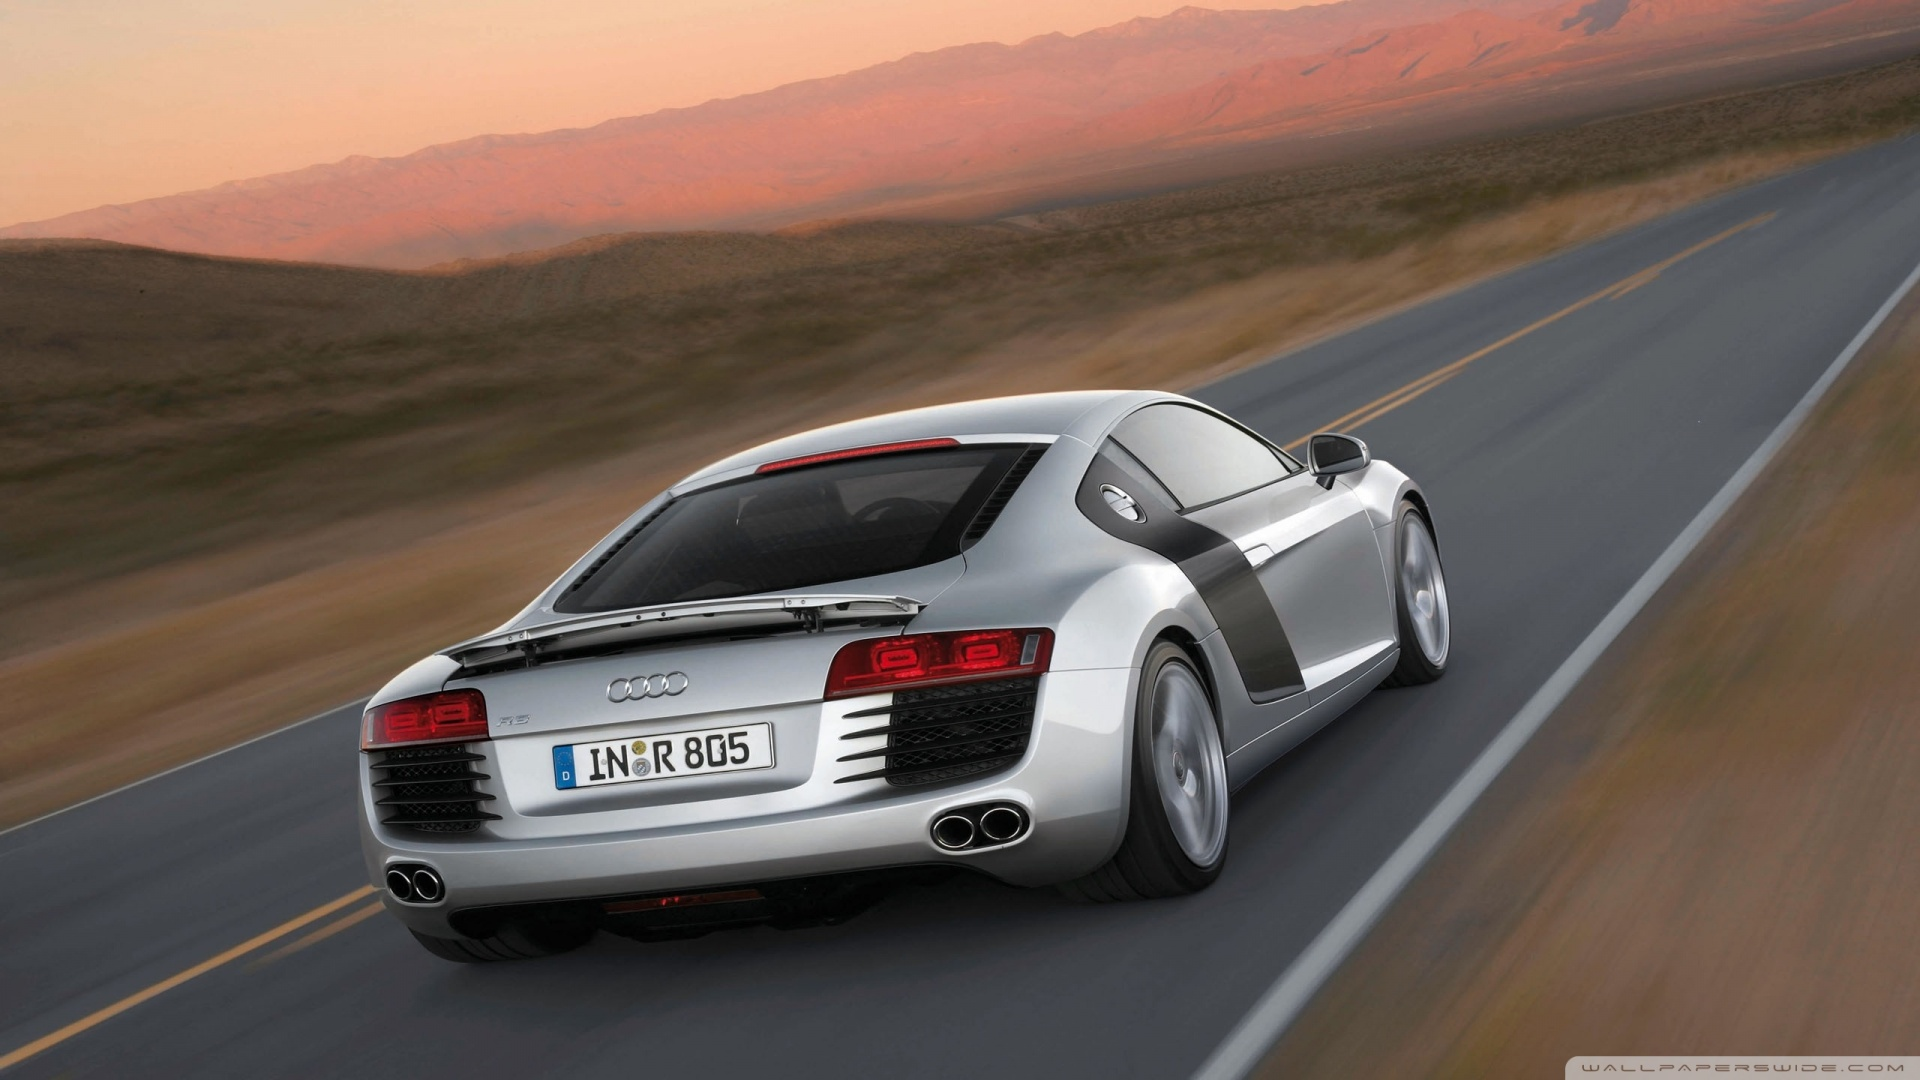 Audi R8 V10 Speed Wallpaper 1920x1080 Audi R8 V10 Speed 1920x1080